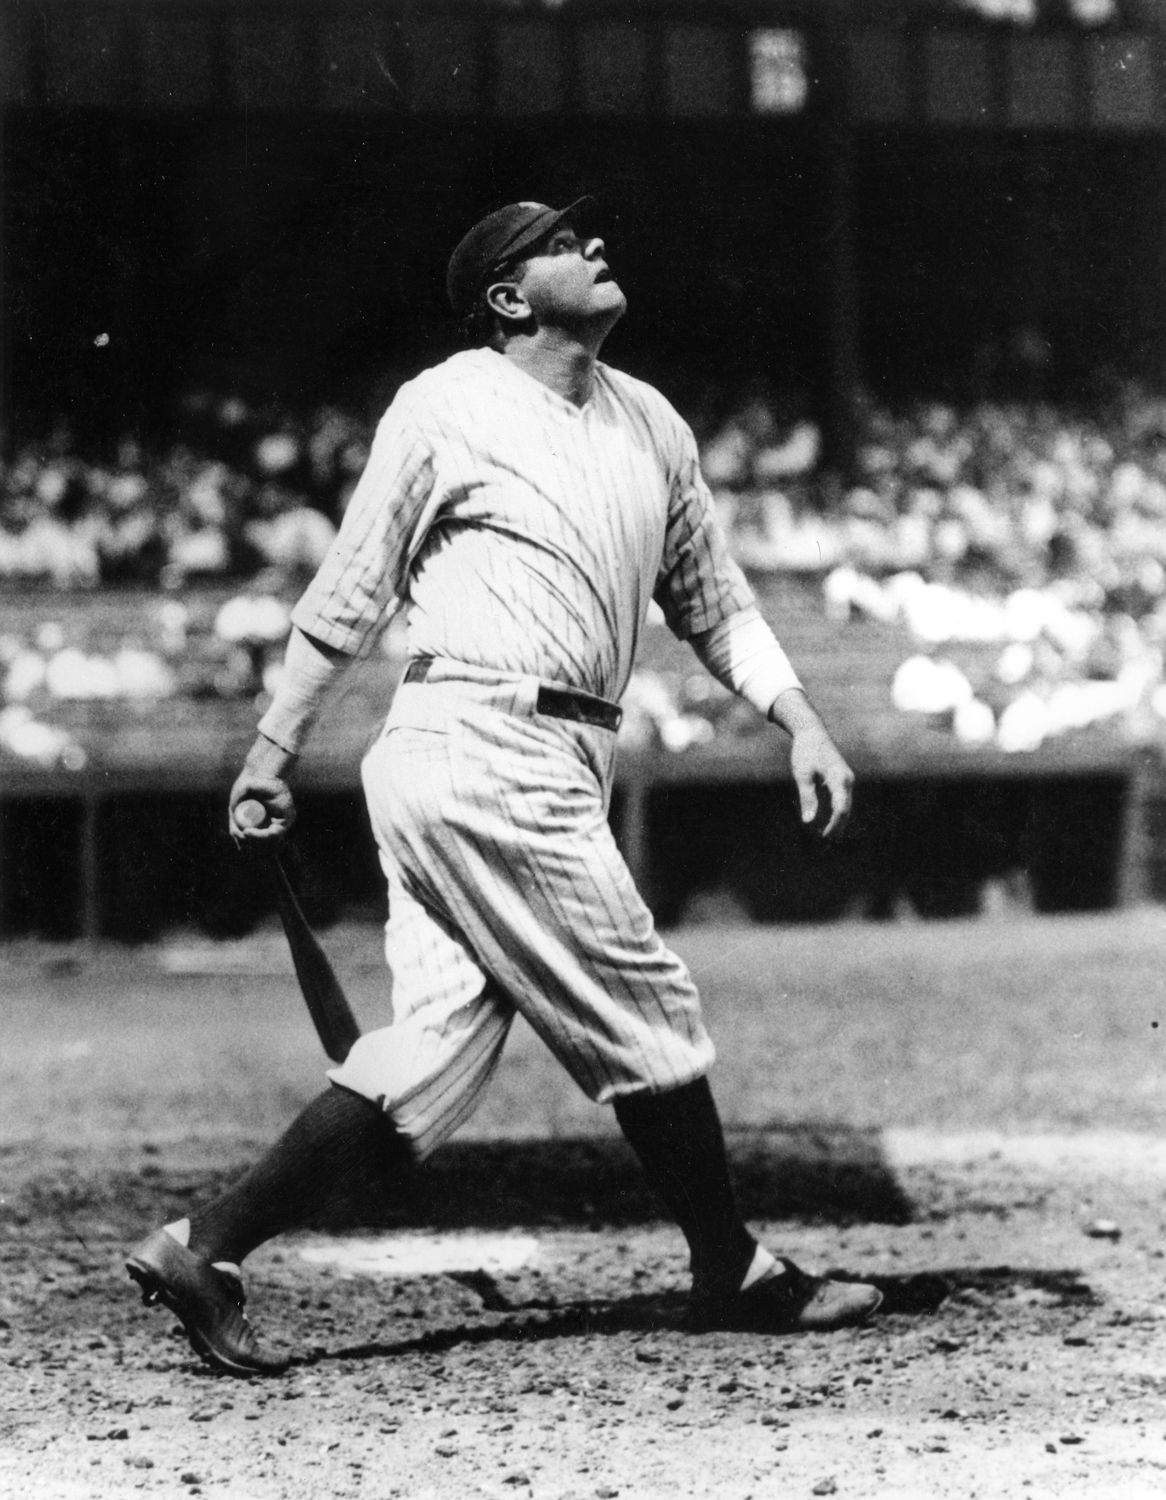 life of babe ruth and his home run fame Read up on babe ruth's who wrote the big bam: the life and times of babe ruth, he in the 1933 all-star game, ruth hit the first home run in the game's.